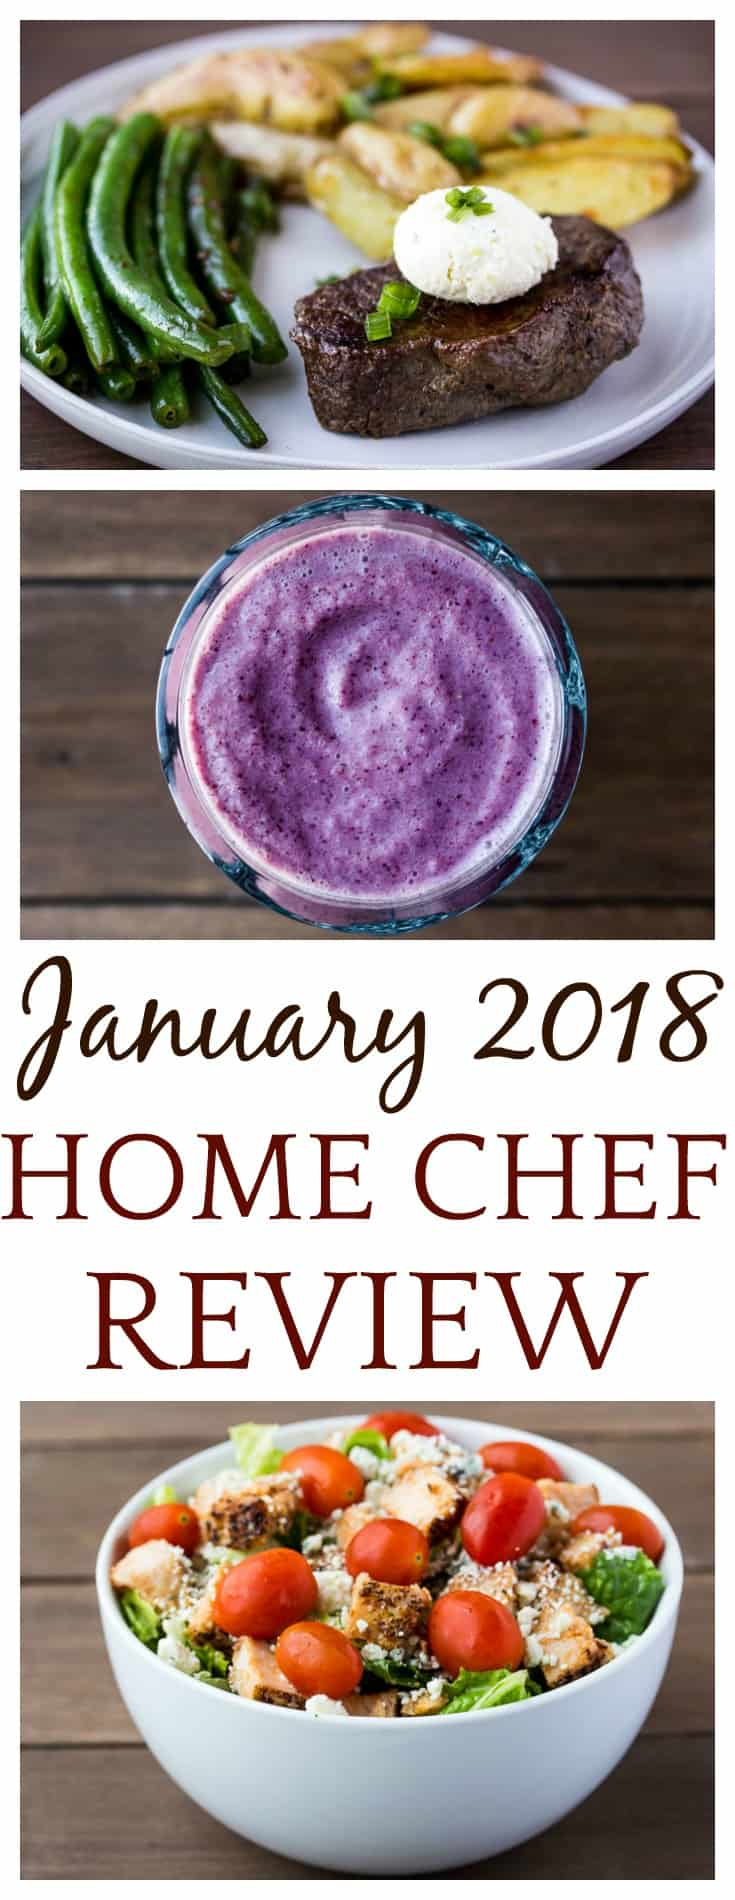 I've really been loving Home Chef! This is my third January 2018 Home Chef Subscription Box Review. It includes a salad, smoothie, and complete meal! | #homechef #homechefmeals #homechefreview #mealkits #subscriptionbox